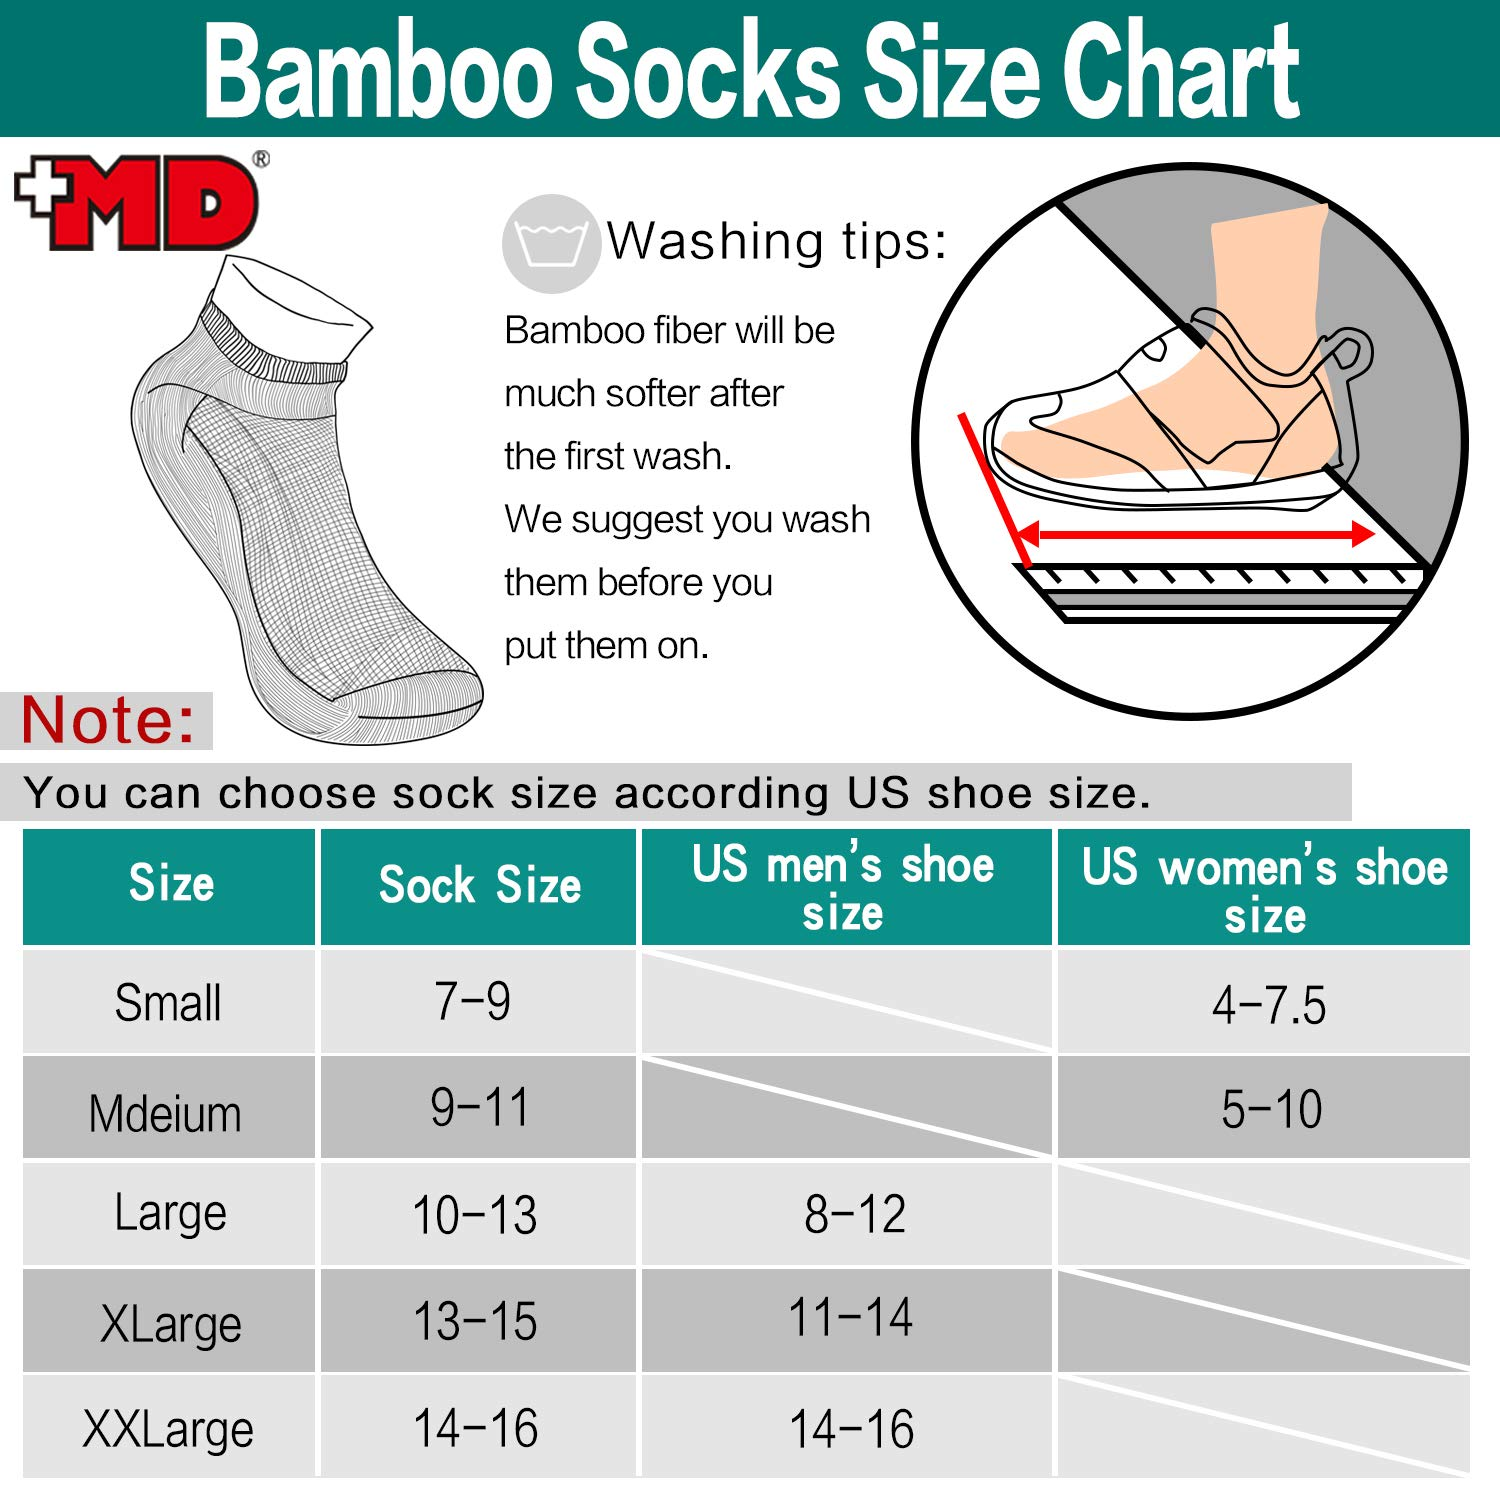 +MD 6 Pack Mens Moisture Wicking /& Odor Control Bamboo No Show /& Low Cut Athletic Socks